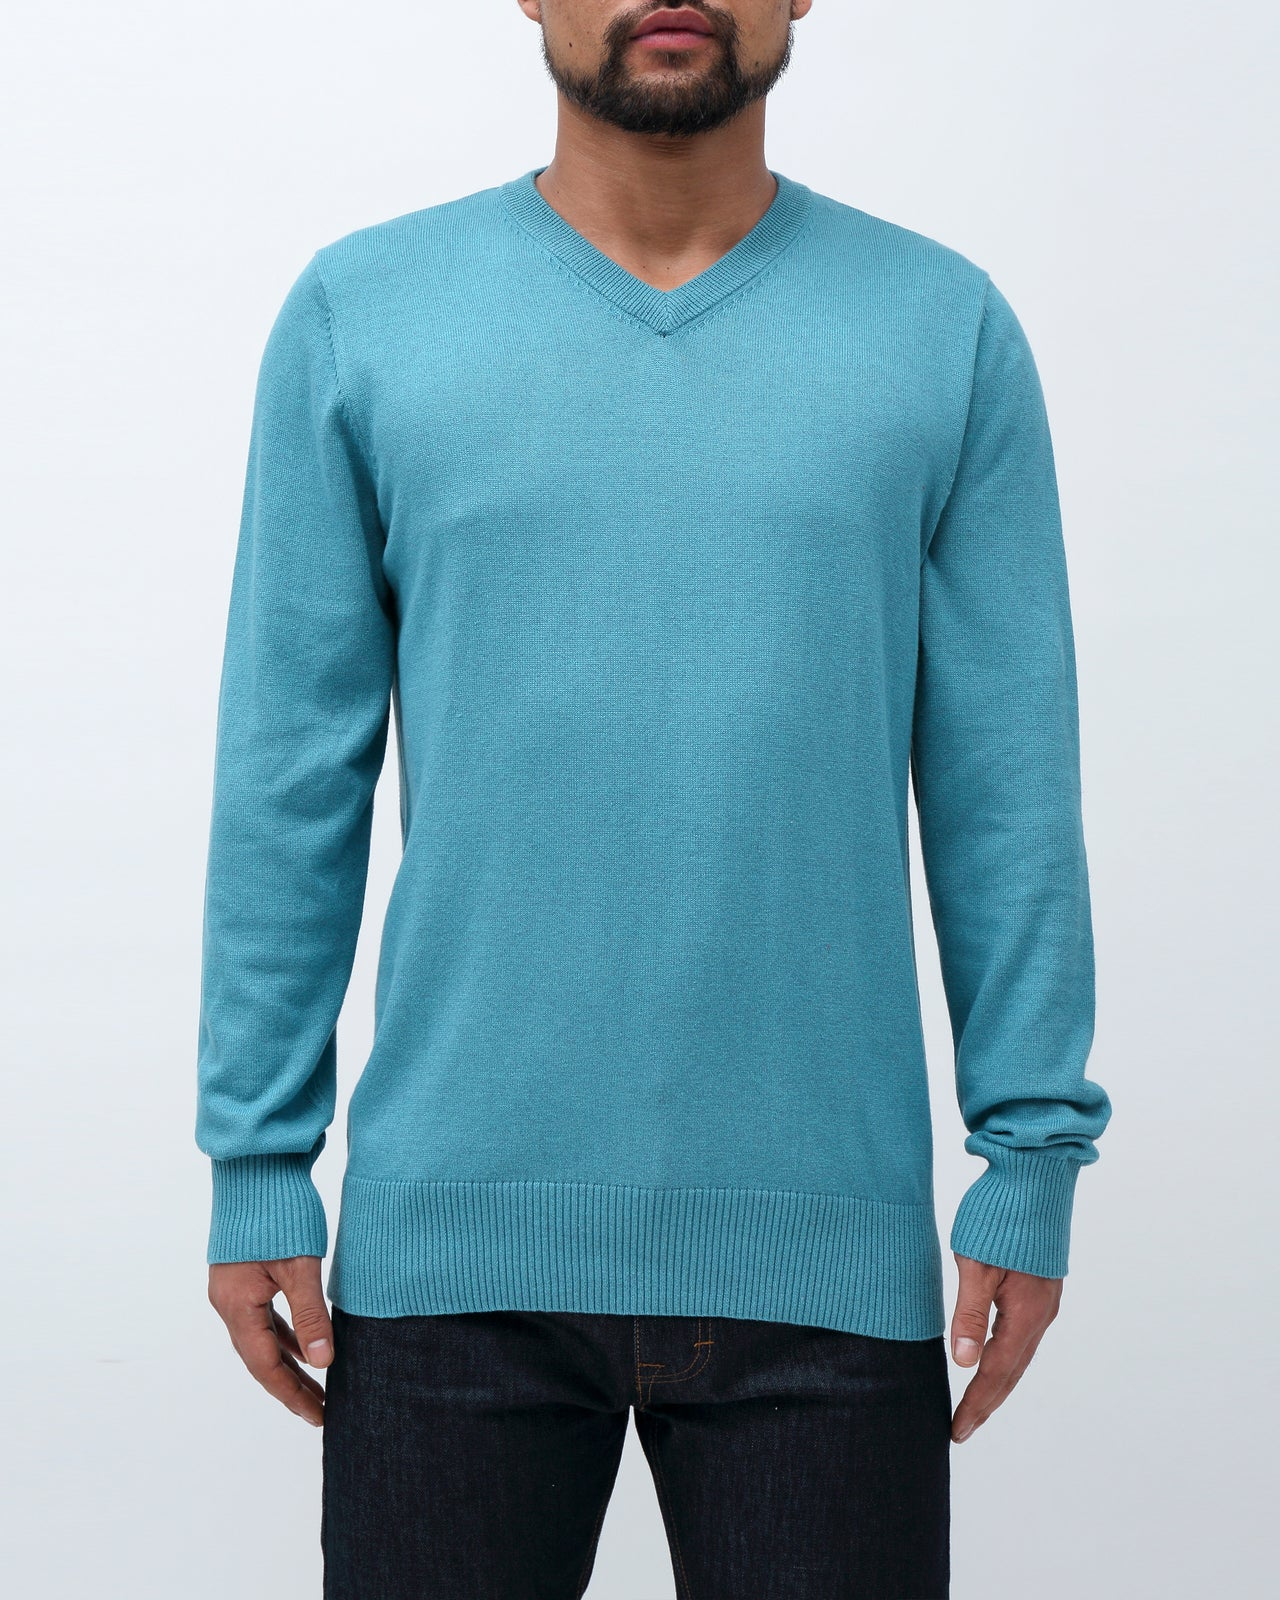 Sweater V Neck - Color : Blue